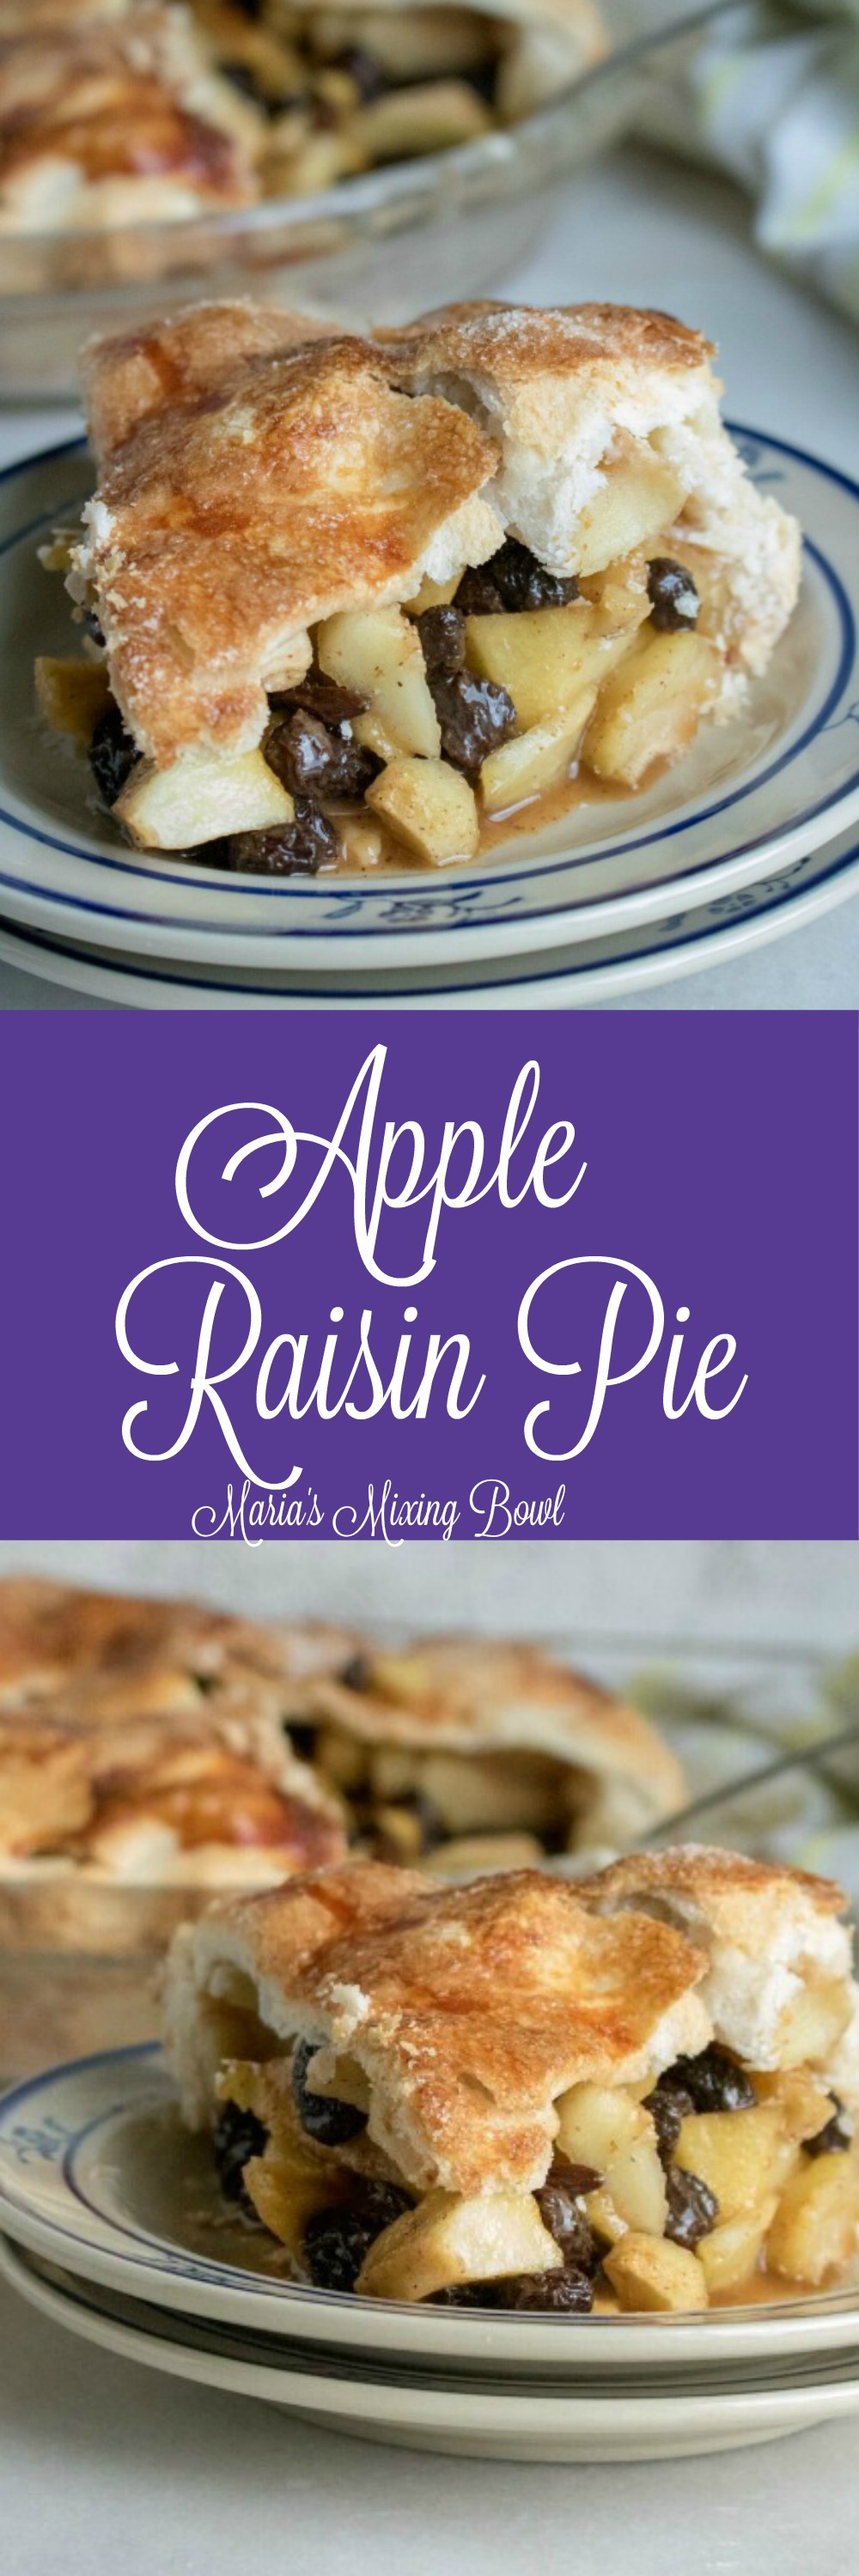 Apple Raisin Pie Recipe - When I first made this pie I was unsure if my family would like it.  Now whenever I serve this pie, someone at the table asks for a second piece.